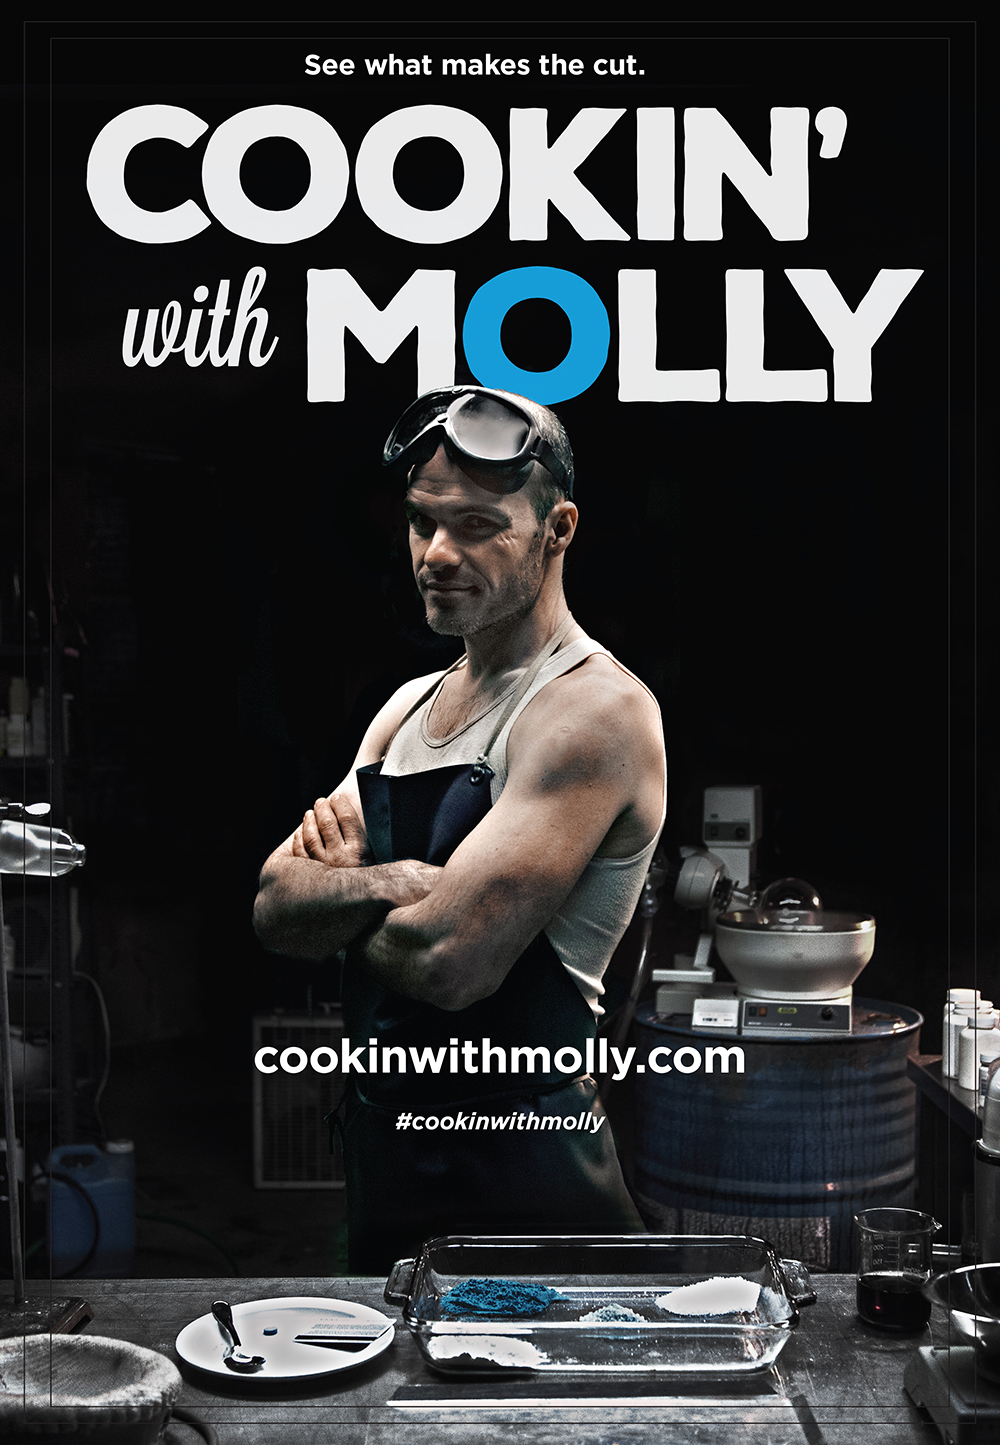 dans-ta-pub-publicité-film-cooking-with-molly-toronto-canada-meth-extasie-2